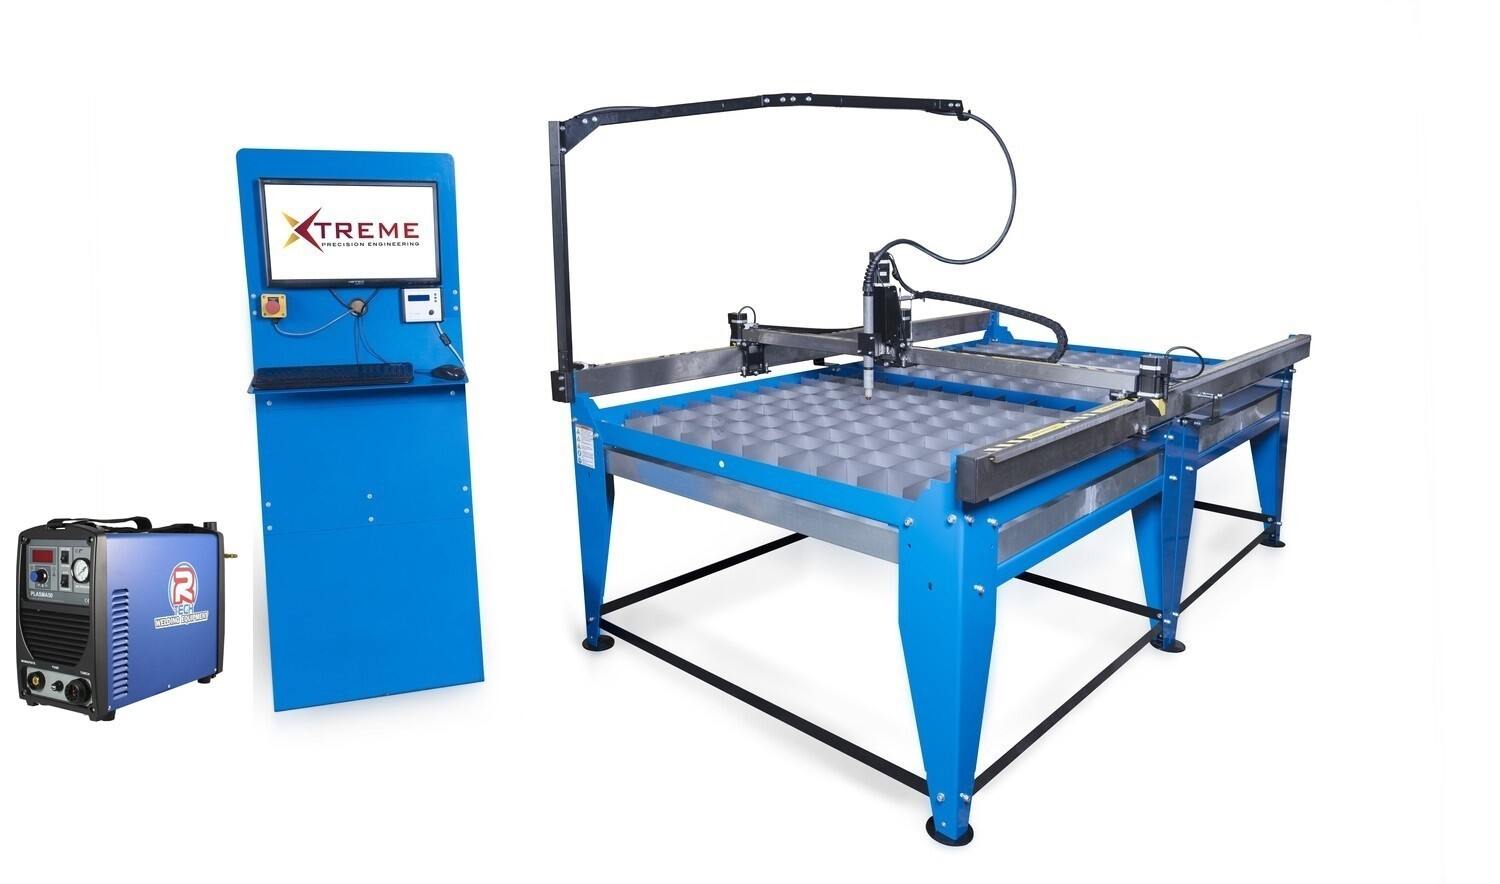 8x4 CNC Complete Plasma Cutting Table & Cutter(taking orders please contact for lead times)